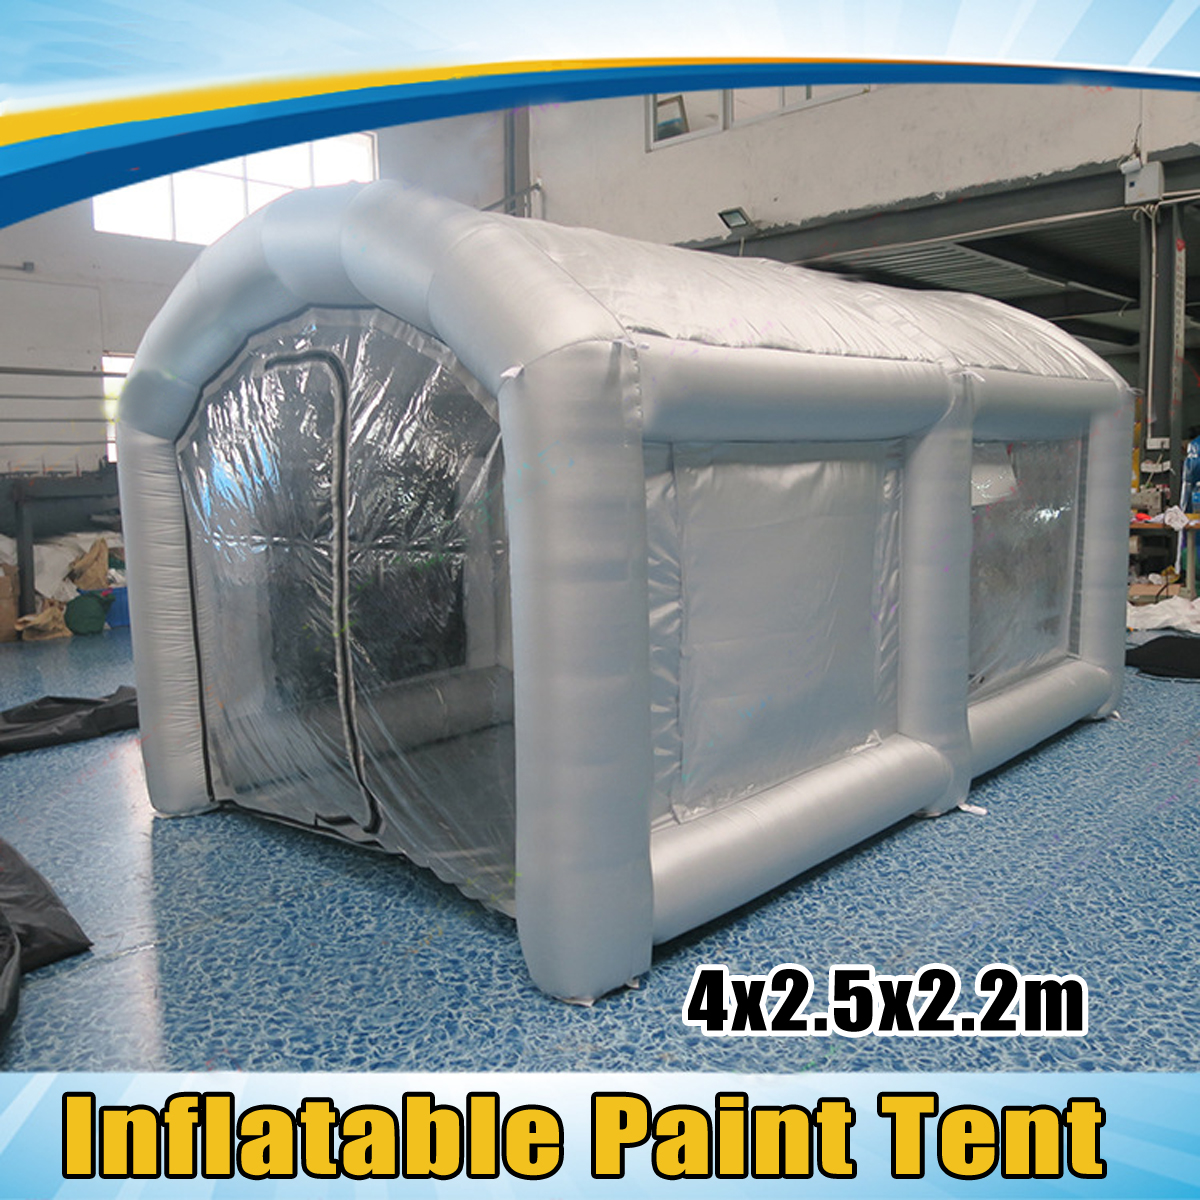 4x2.5x2.2M Inflatable Spray Booth Tents Inflatable Paint booth Car Parking Tent Workstation with Blower Outdoor Fun free shipping inflatable spray paint garage booth tent high quality 8x4 5x3 meters cabine de peinture gonflable toy tents